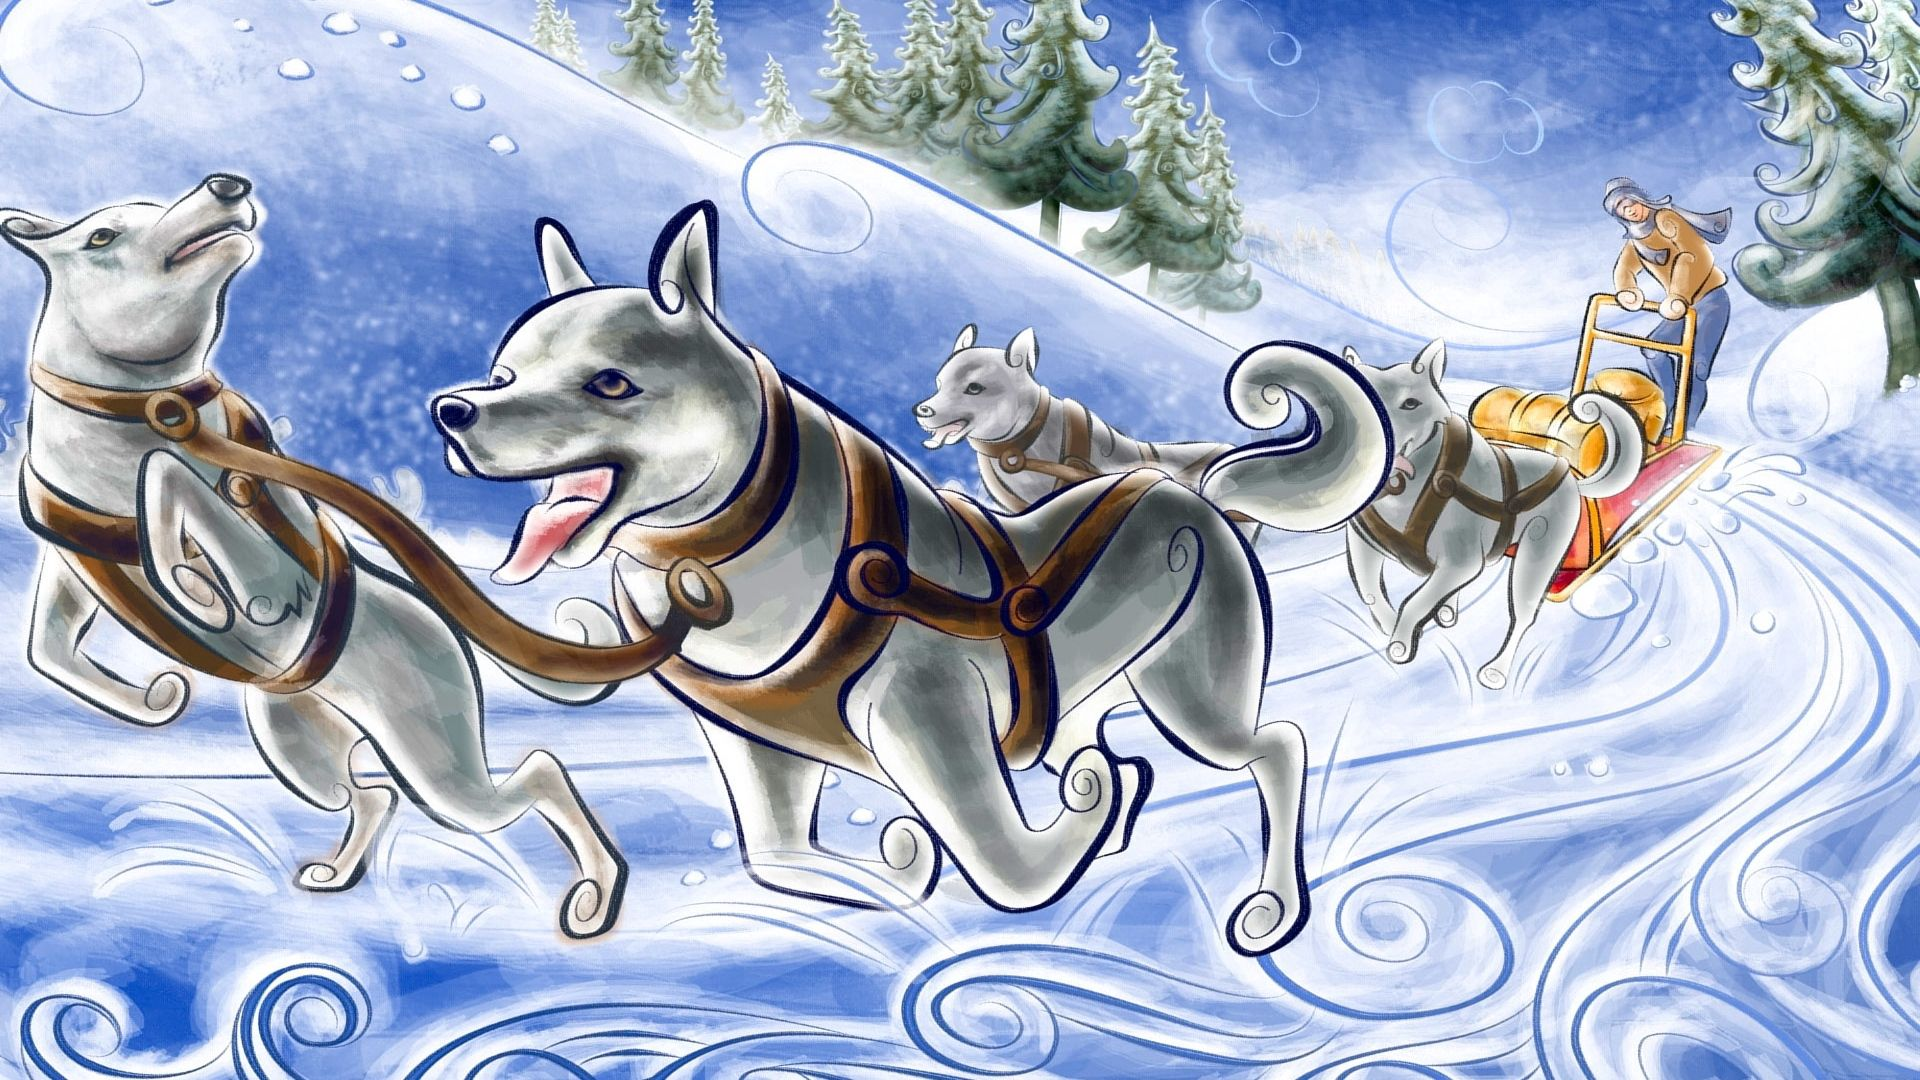 120620 download wallpaper Art, Picture, Drawing, Dogs, Carriage, Cart, Team, Snow, Run, Running screensavers and pictures for free